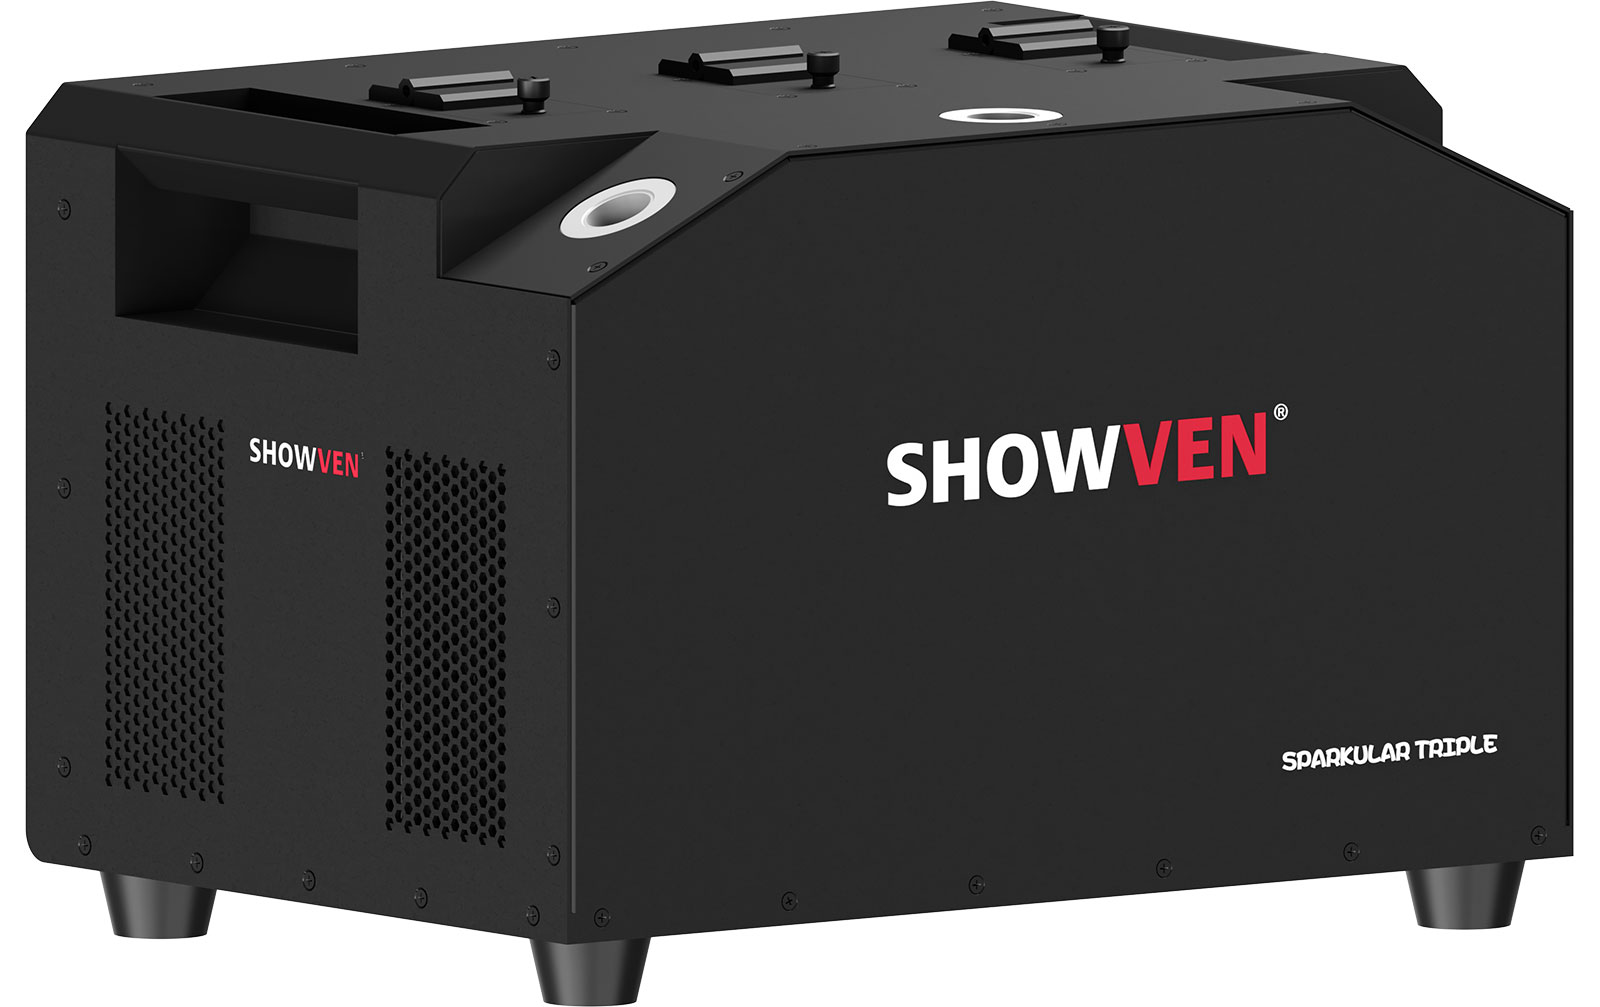 showven-sparkular-triple-bt51